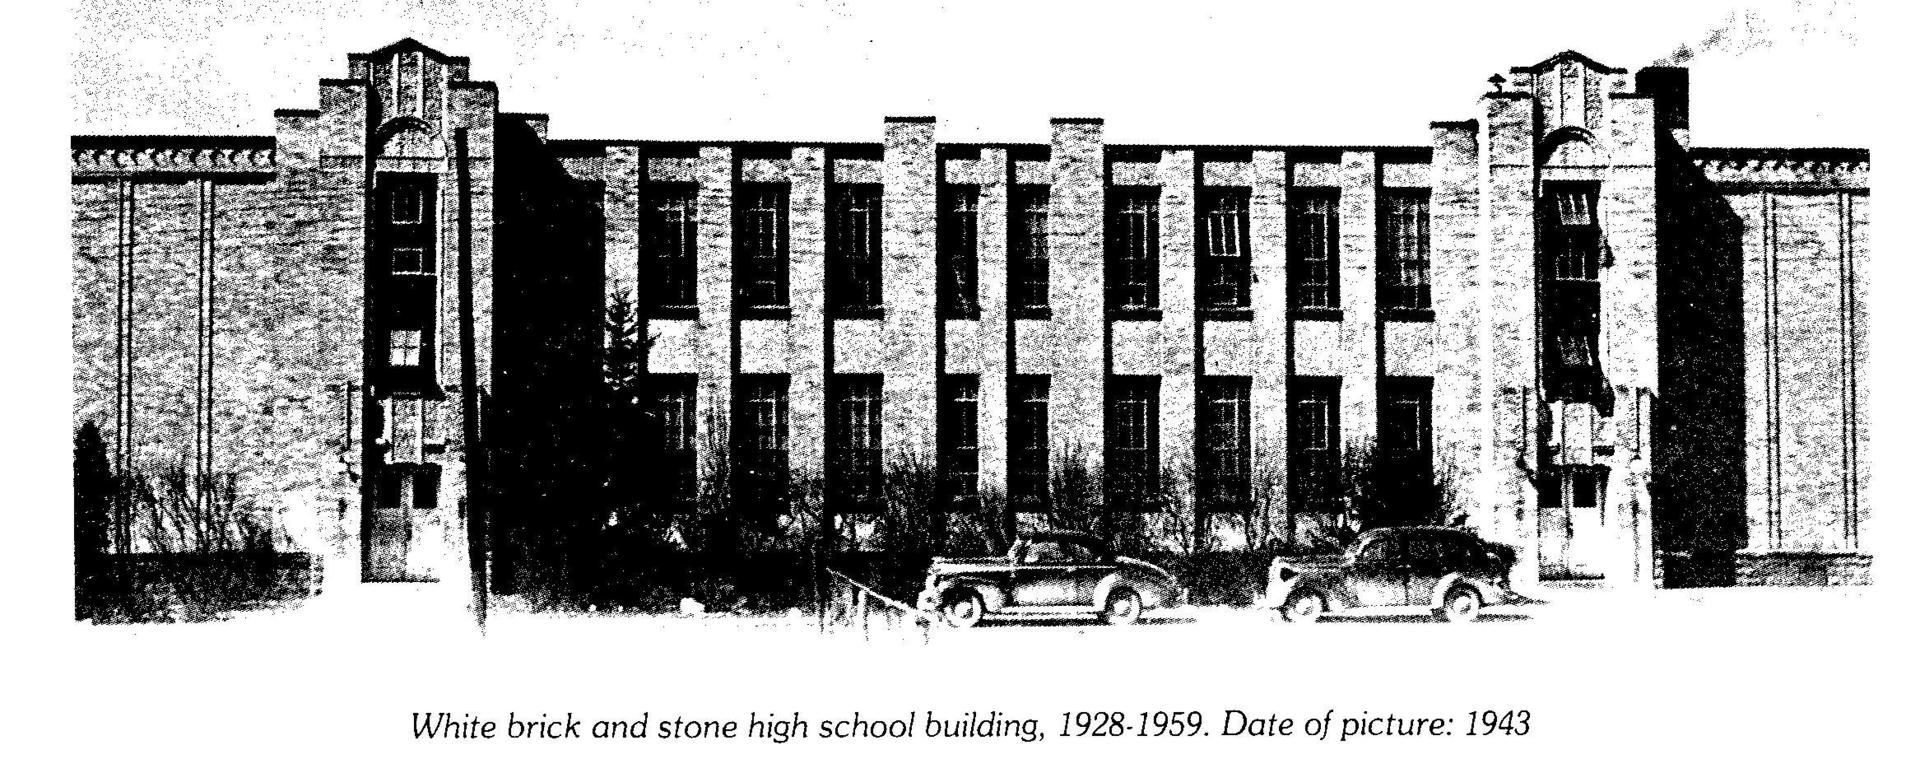 Black and white photo of White brick and stone high school building, 1928-1959 Date of picture: 1943